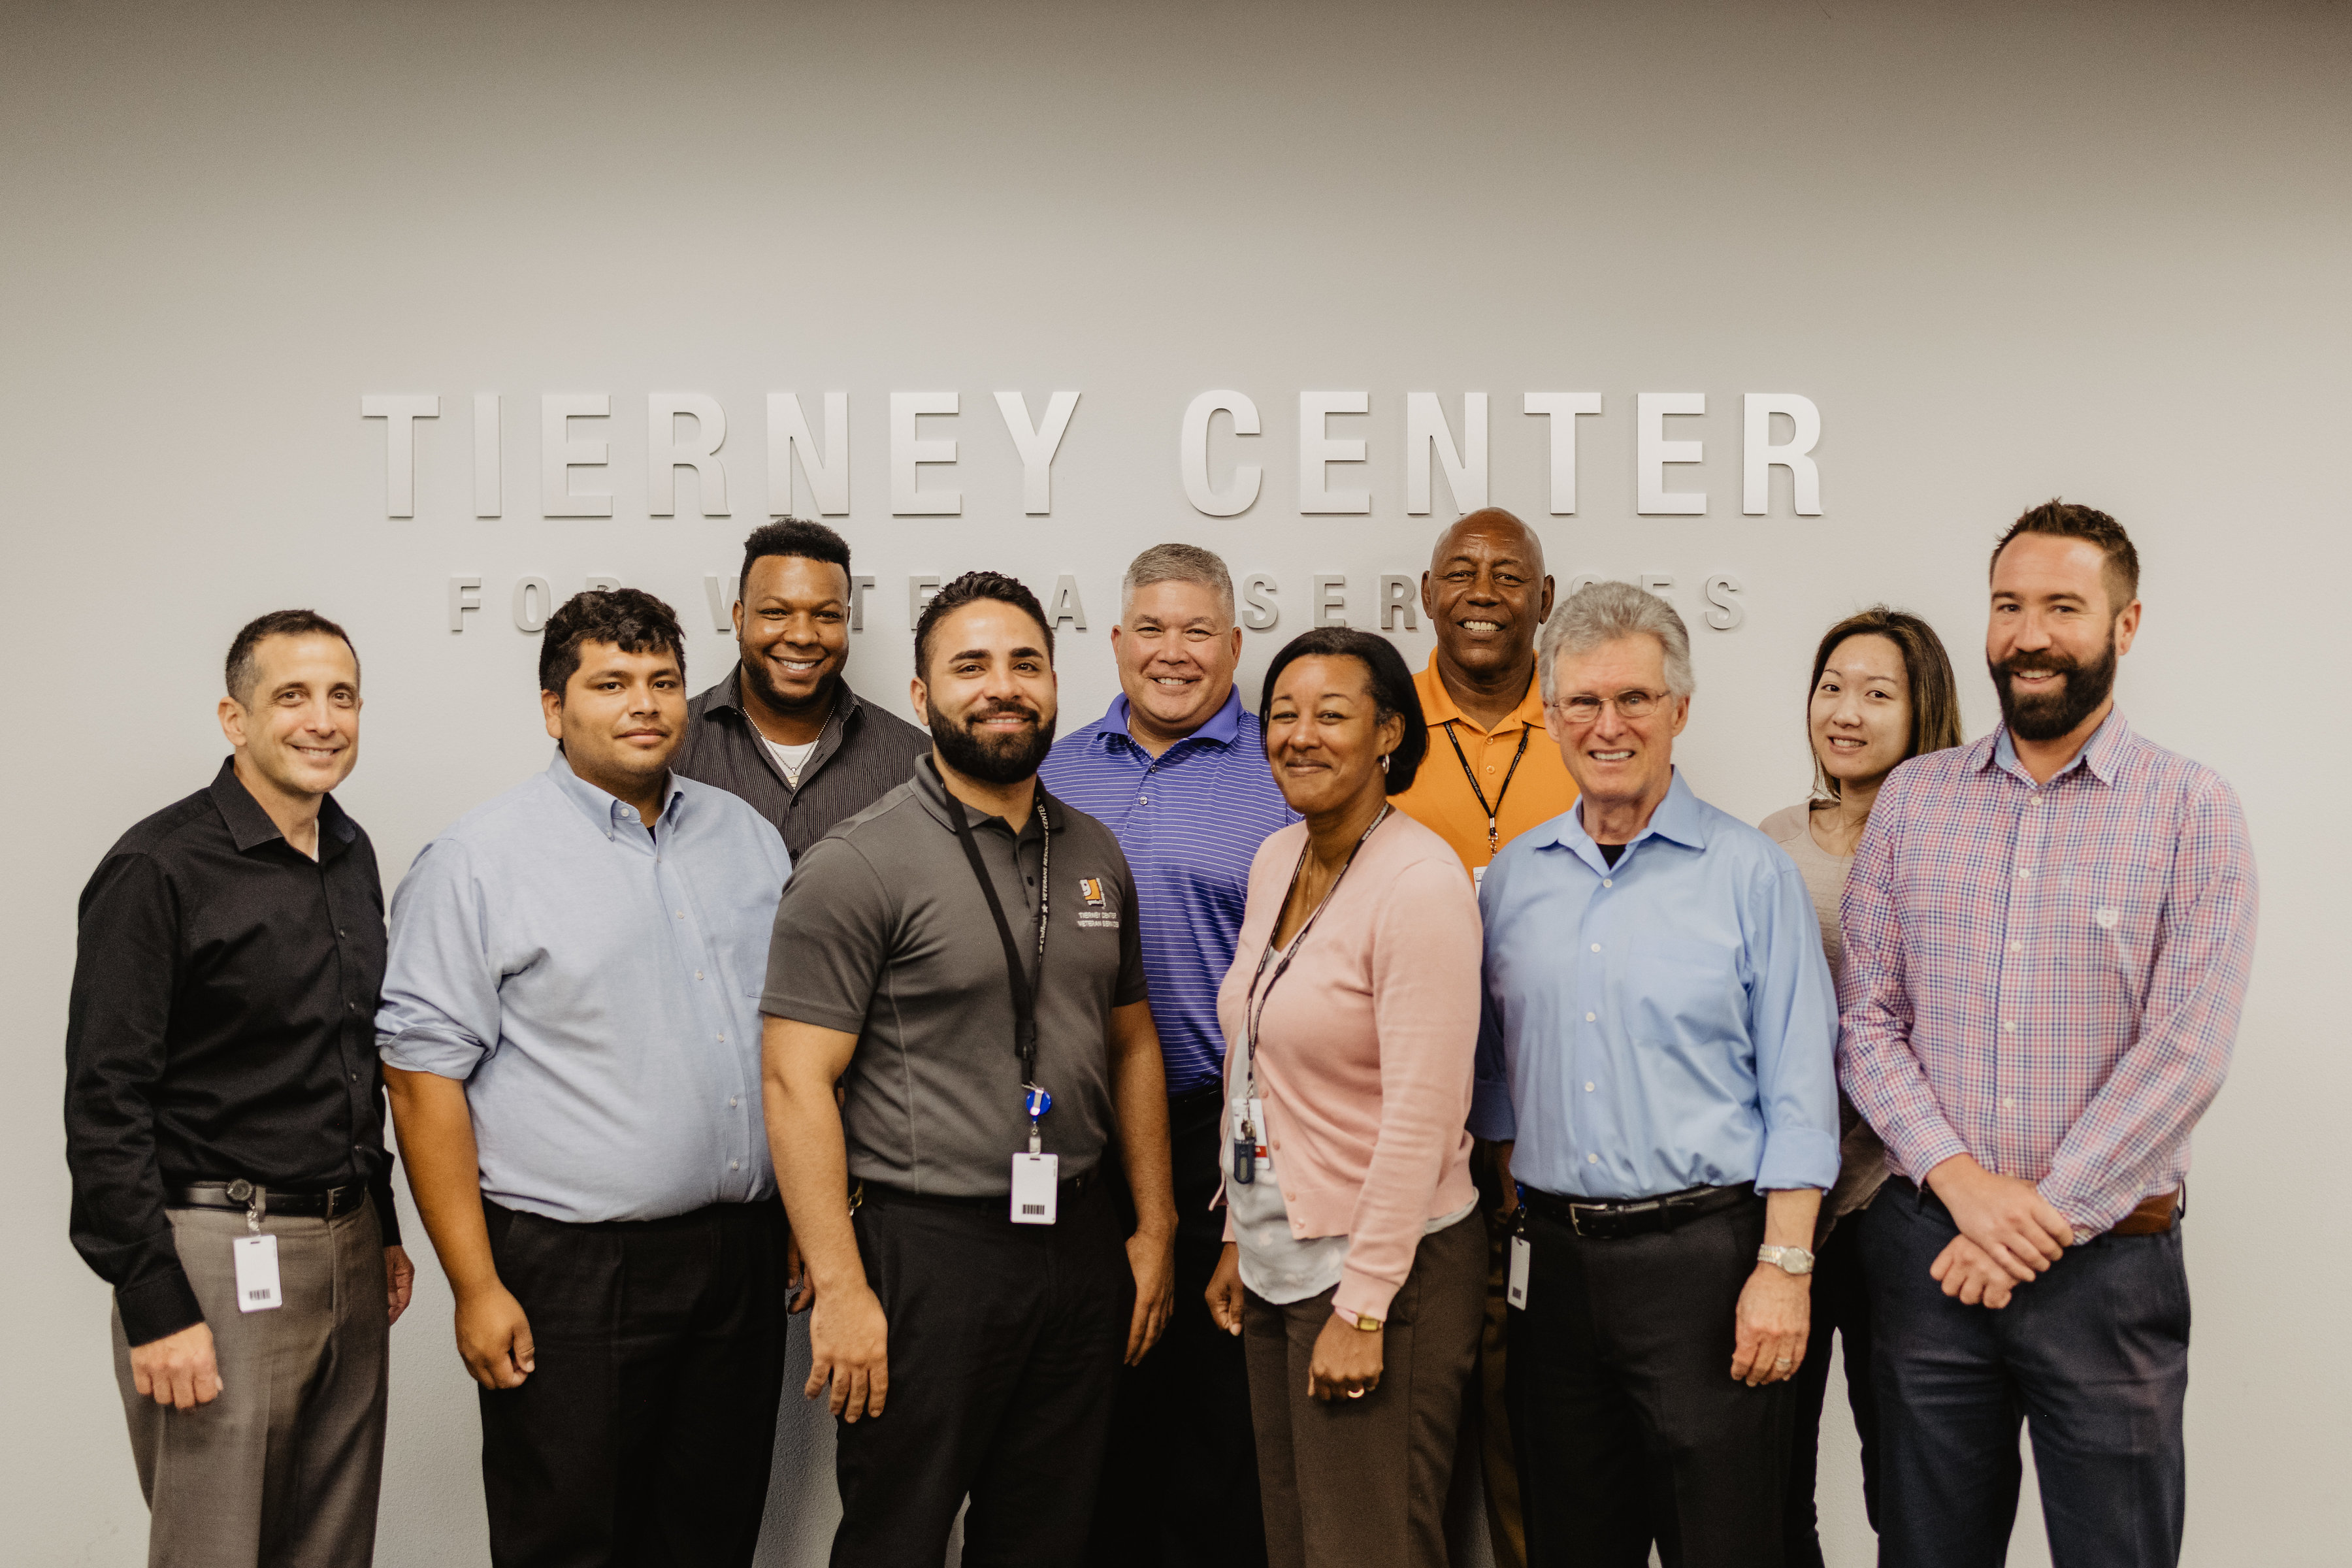 Group of Goodwill of Orange County employee's smiling